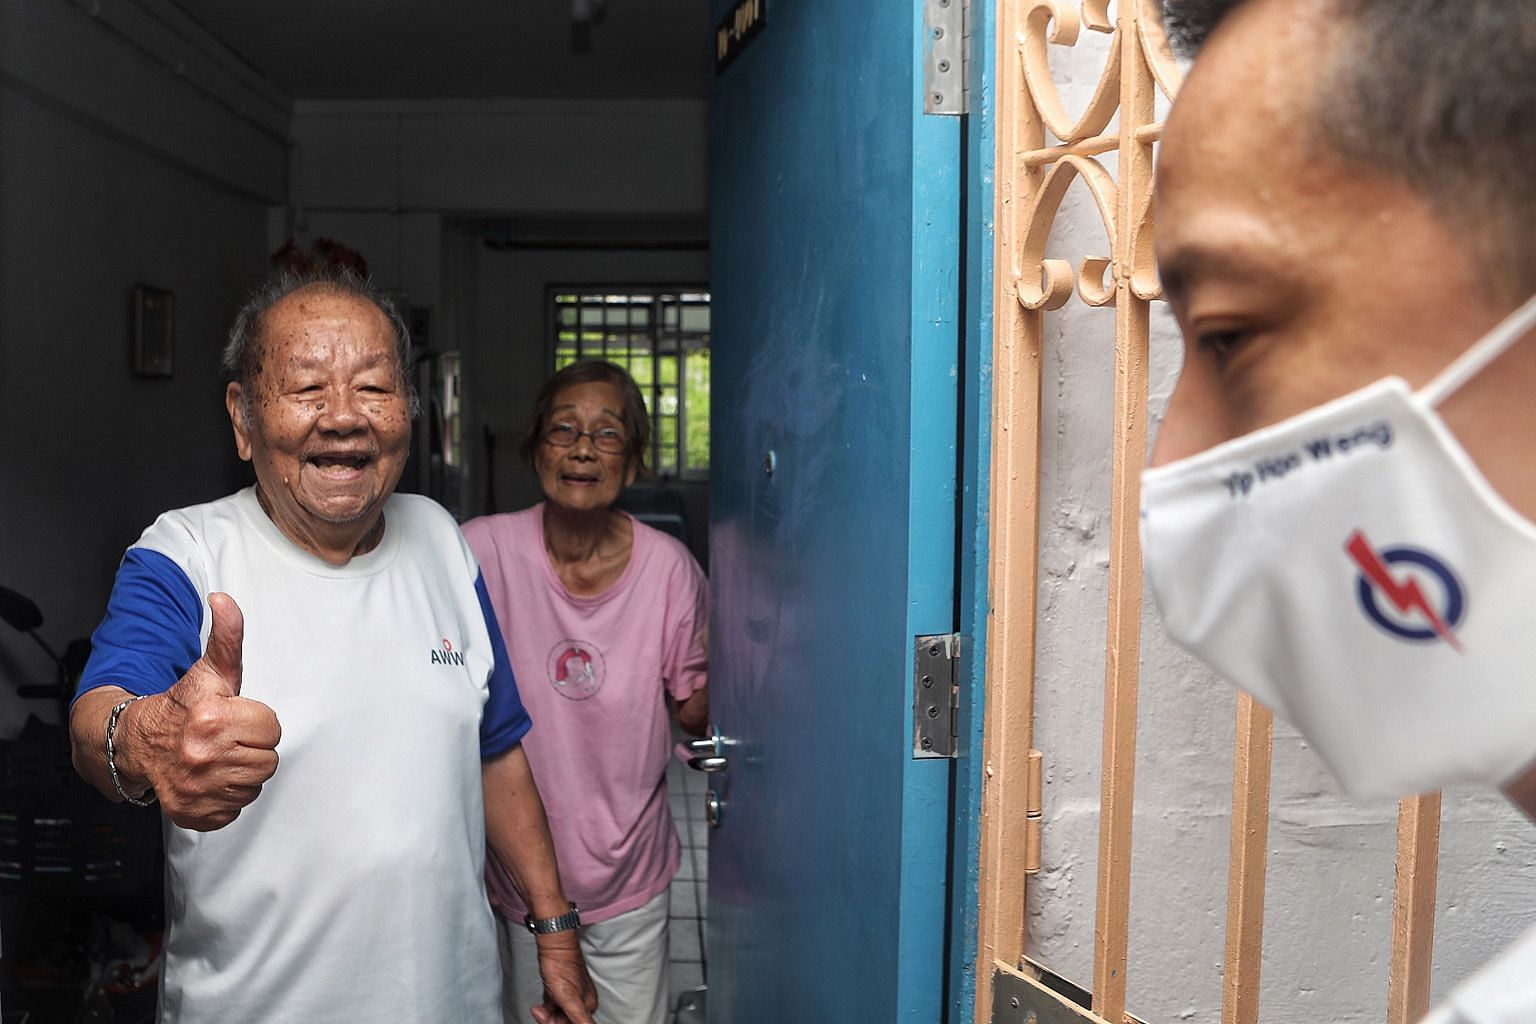 Mr Wong Win Cheong, 94, (with his 89-year-old wife Ho Sao Ning) giving Mr Yip Hon Weng the thumbs up during the People's Action Party candidate's walkabout at Block 123 Ang Mo Kio Avenue 6 yesterday.